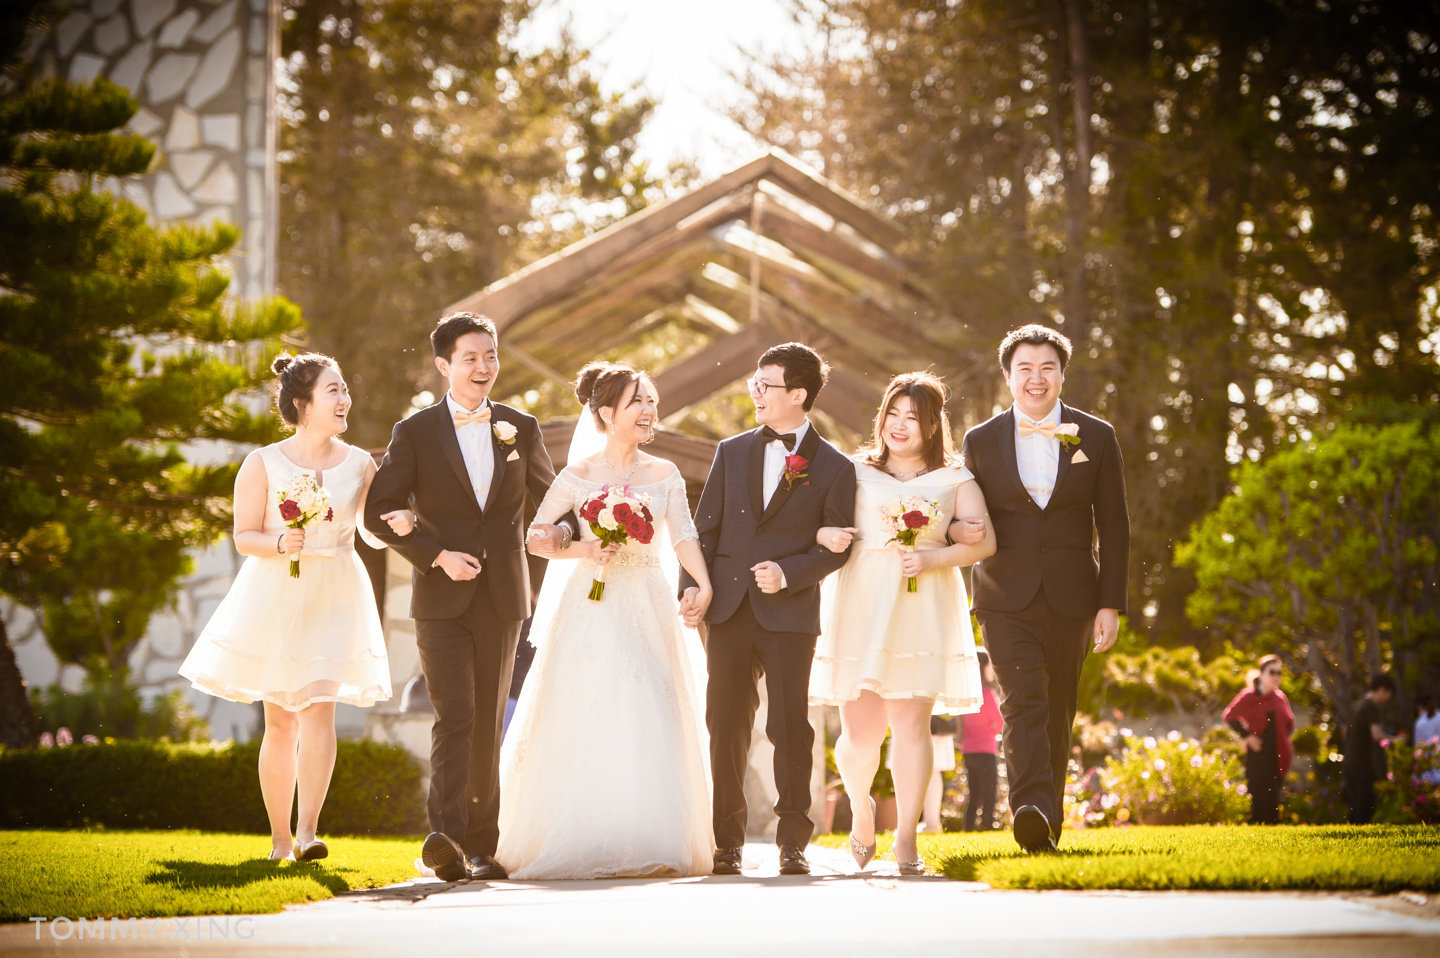 Los Angeles Wedding Photographer 洛杉矶婚礼婚纱摄影师 Tommy Xing-166.JPG